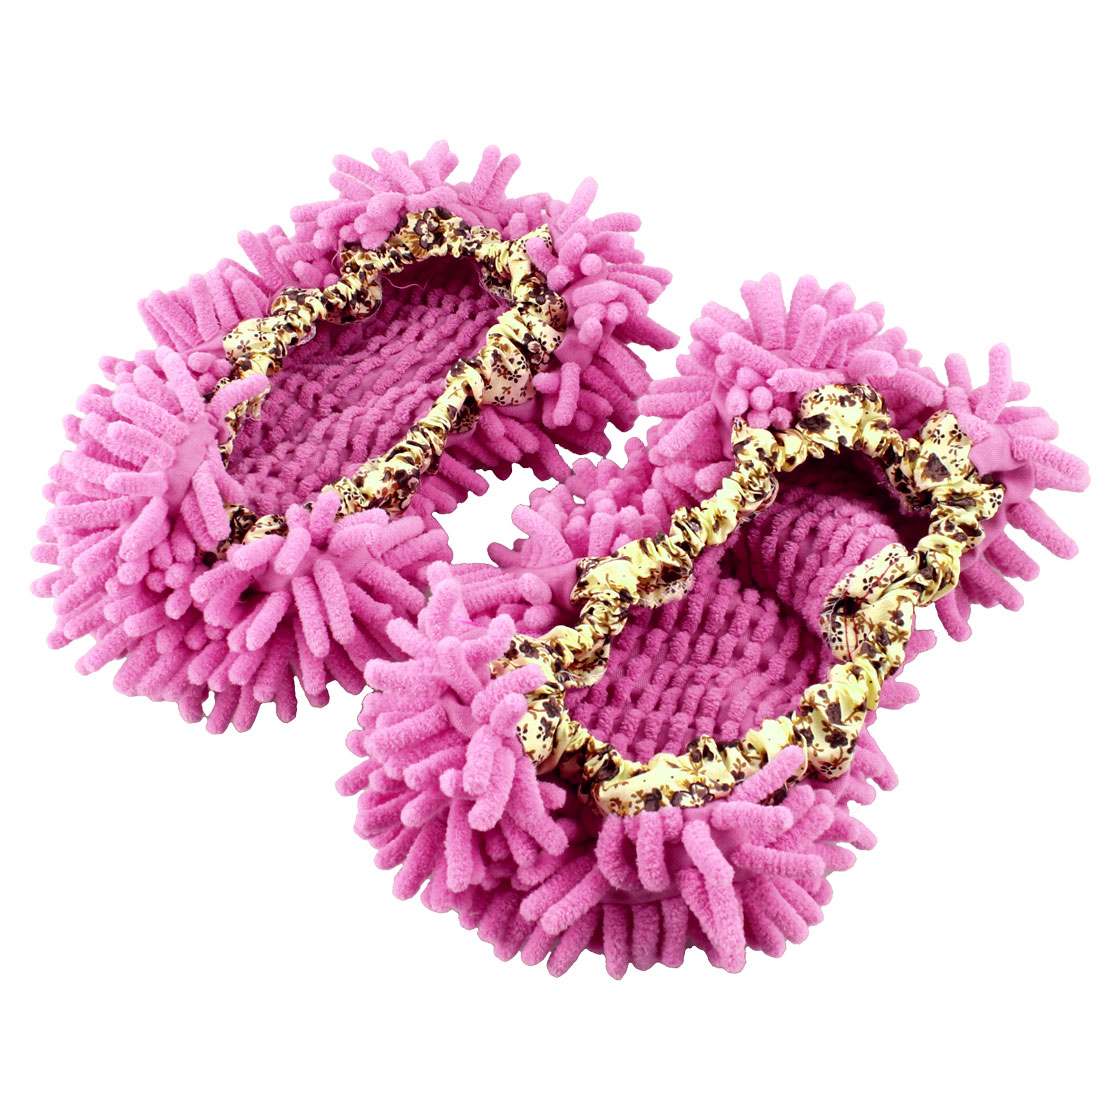 Pair Multifunction Floor House Cleaning Mop Slippers Shoes Cover Pink